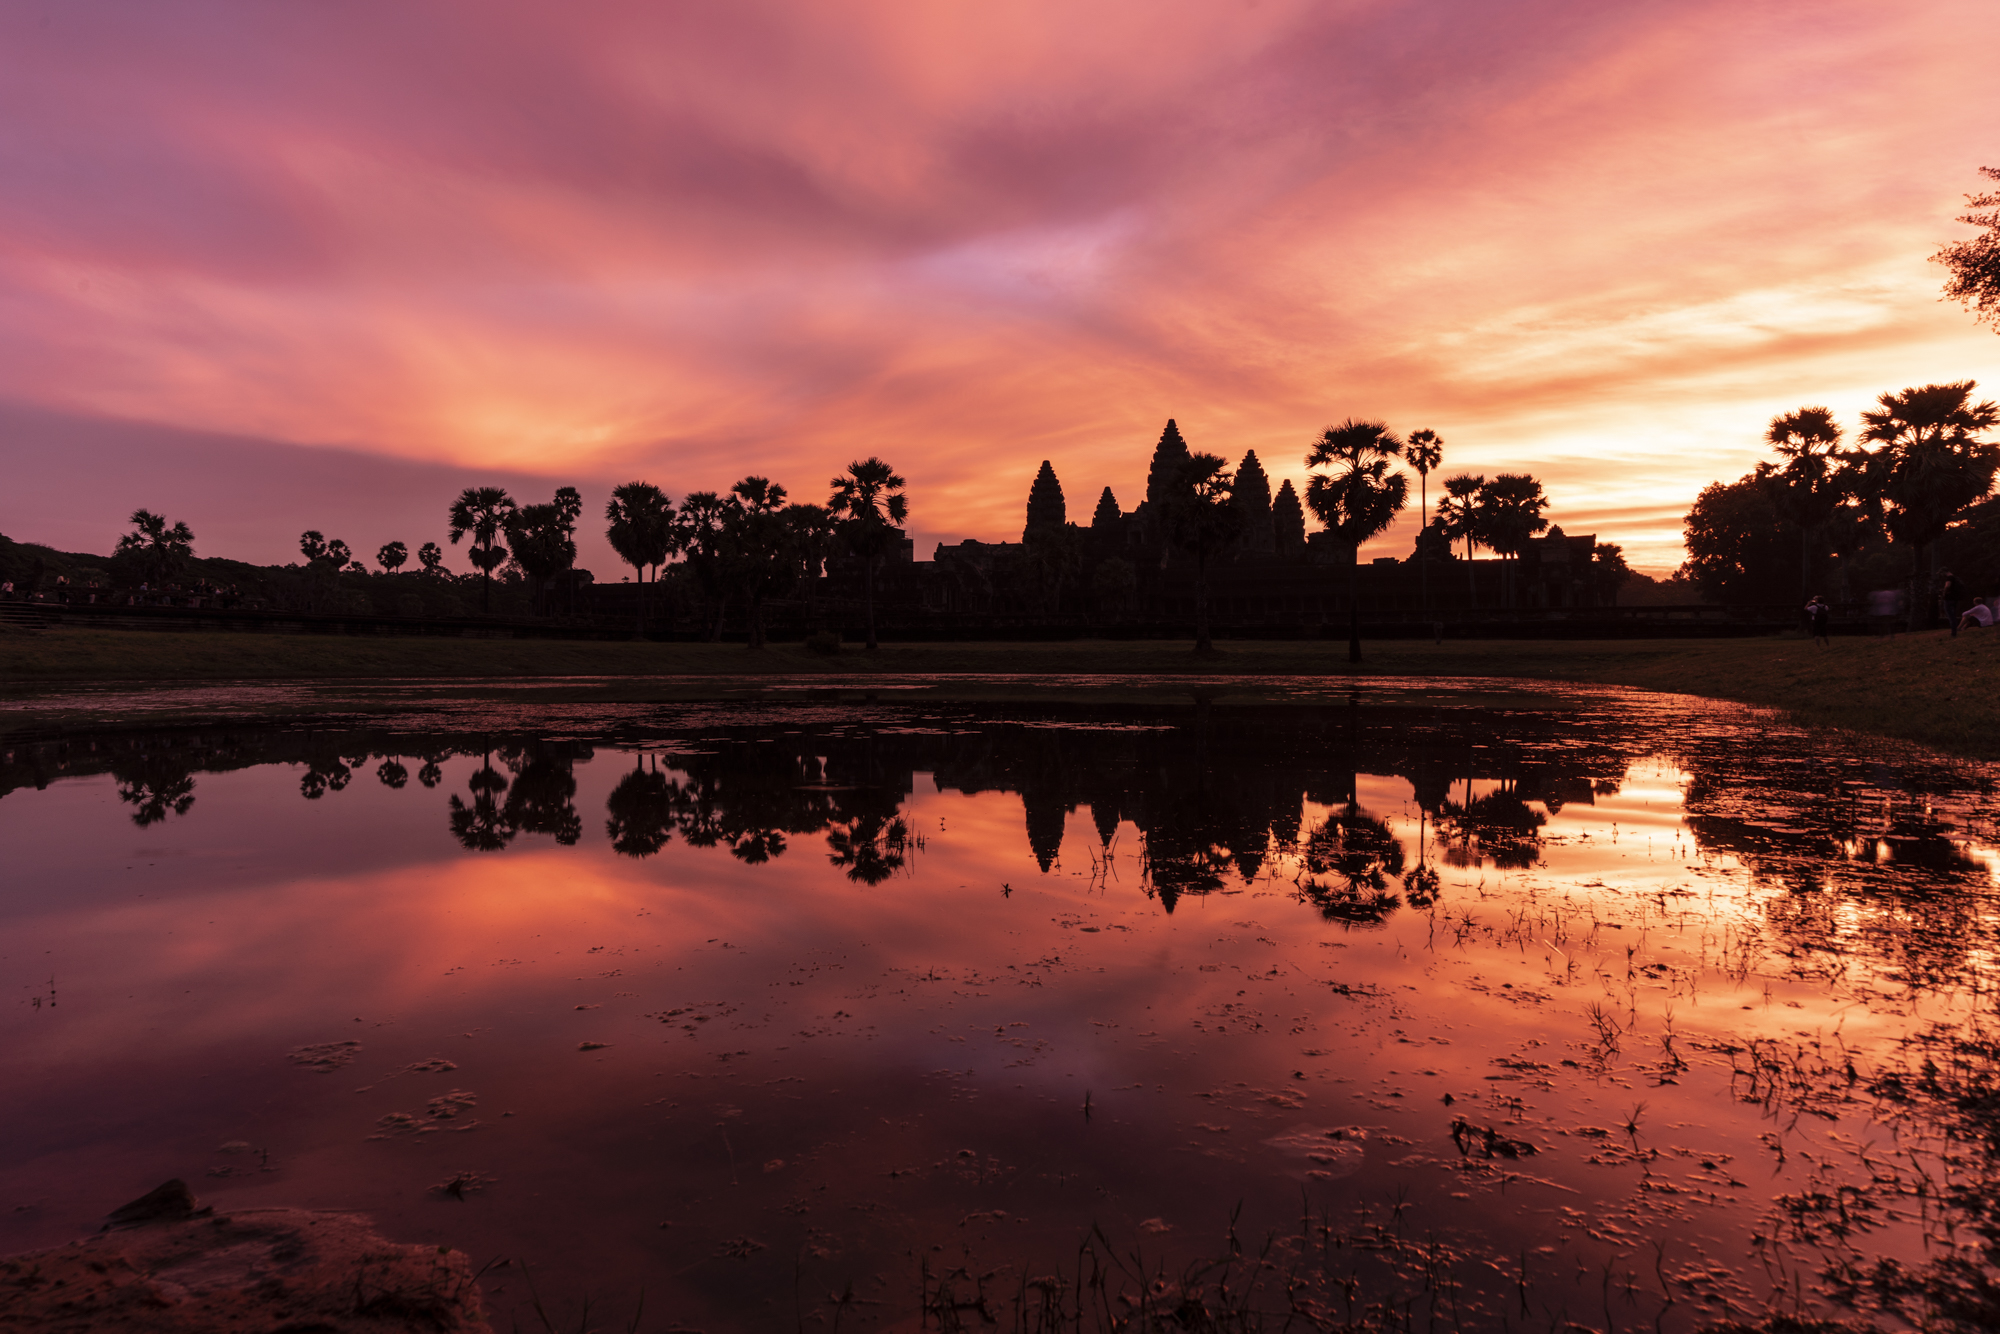 Sunrise seen AngkorWat